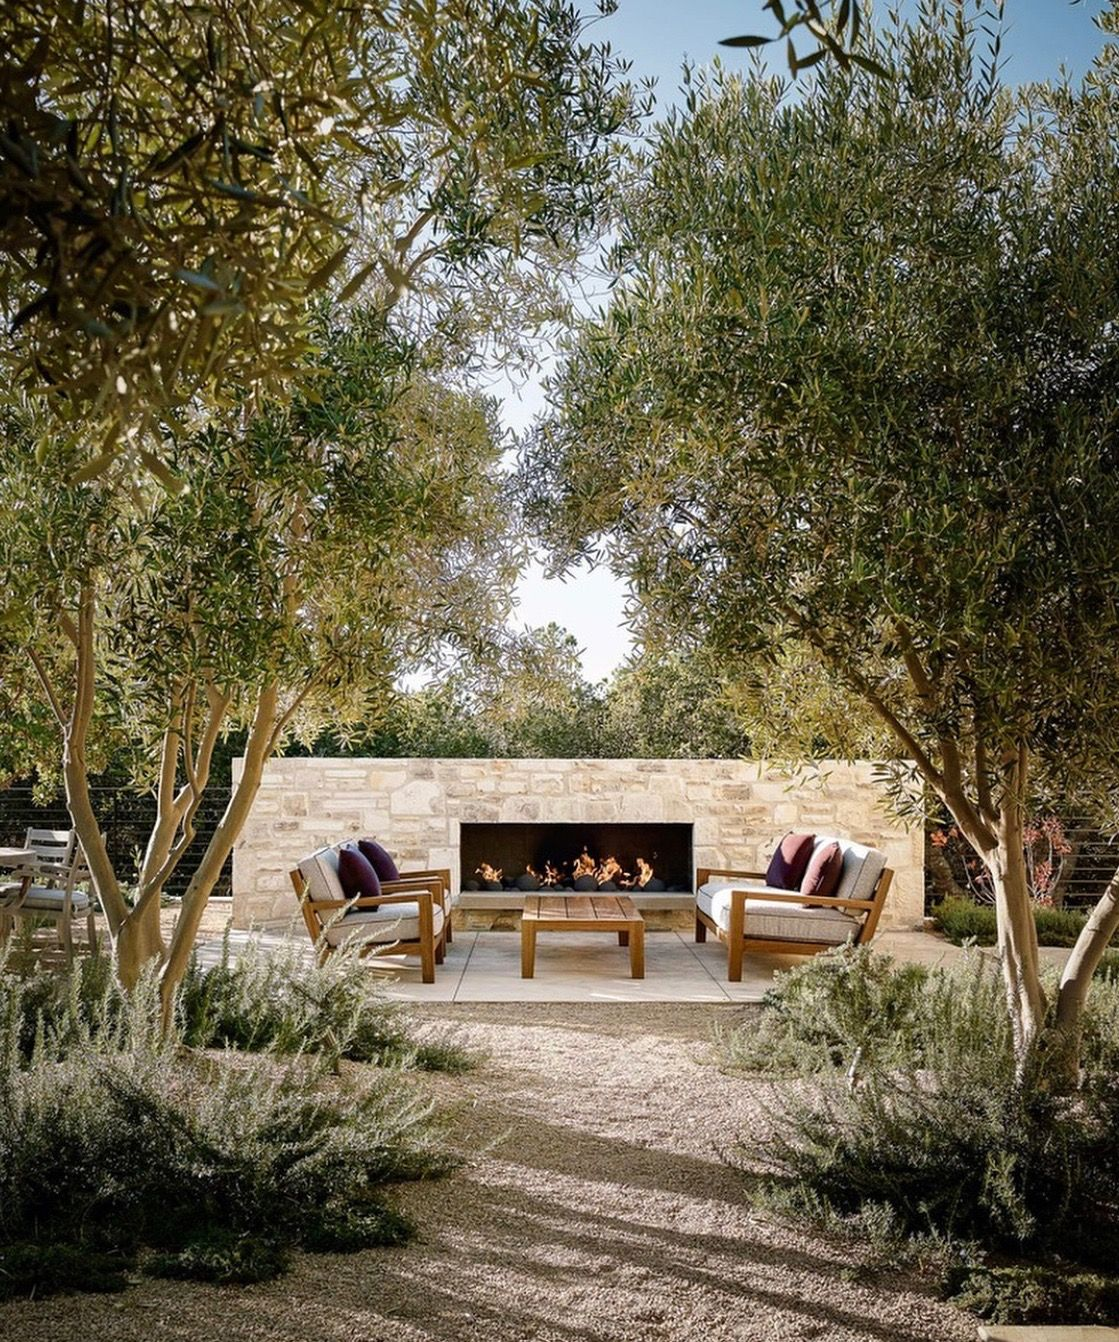 pea stone gravel patio landscape exterior inspiration mediterranean low-maintenance olive trees outdoor stone fireplace pavers